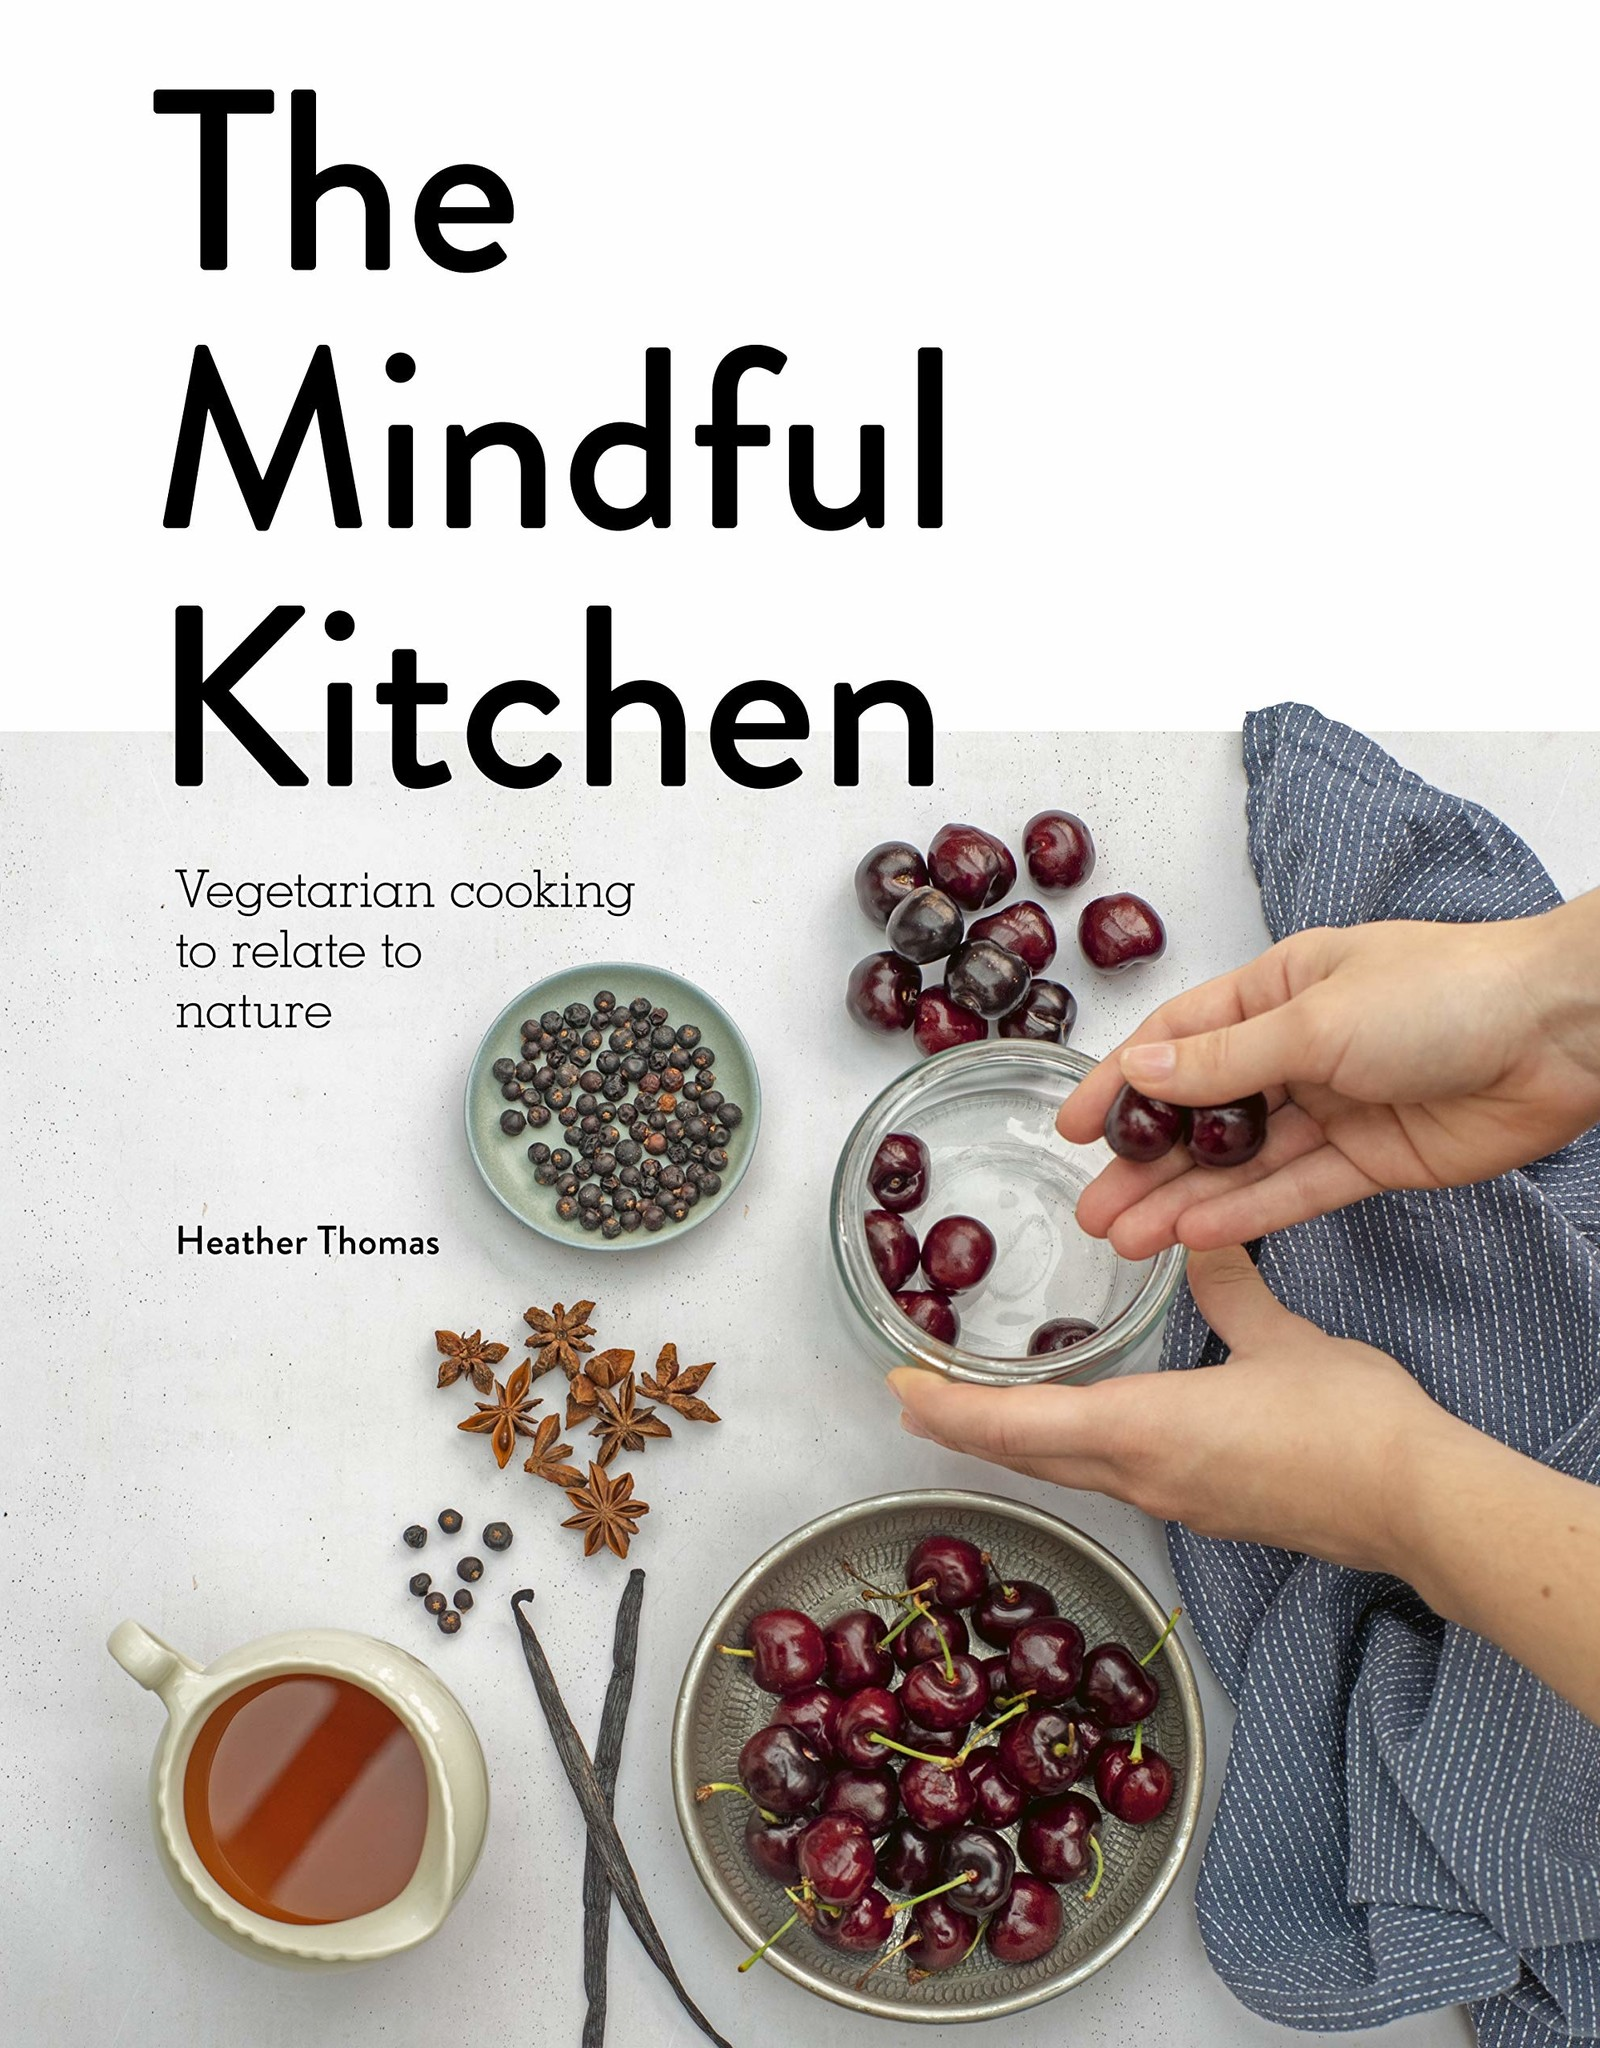 Quarto Knows Publishing Mindful Kitchen: Vegetarian Cooking to Relate to Nature